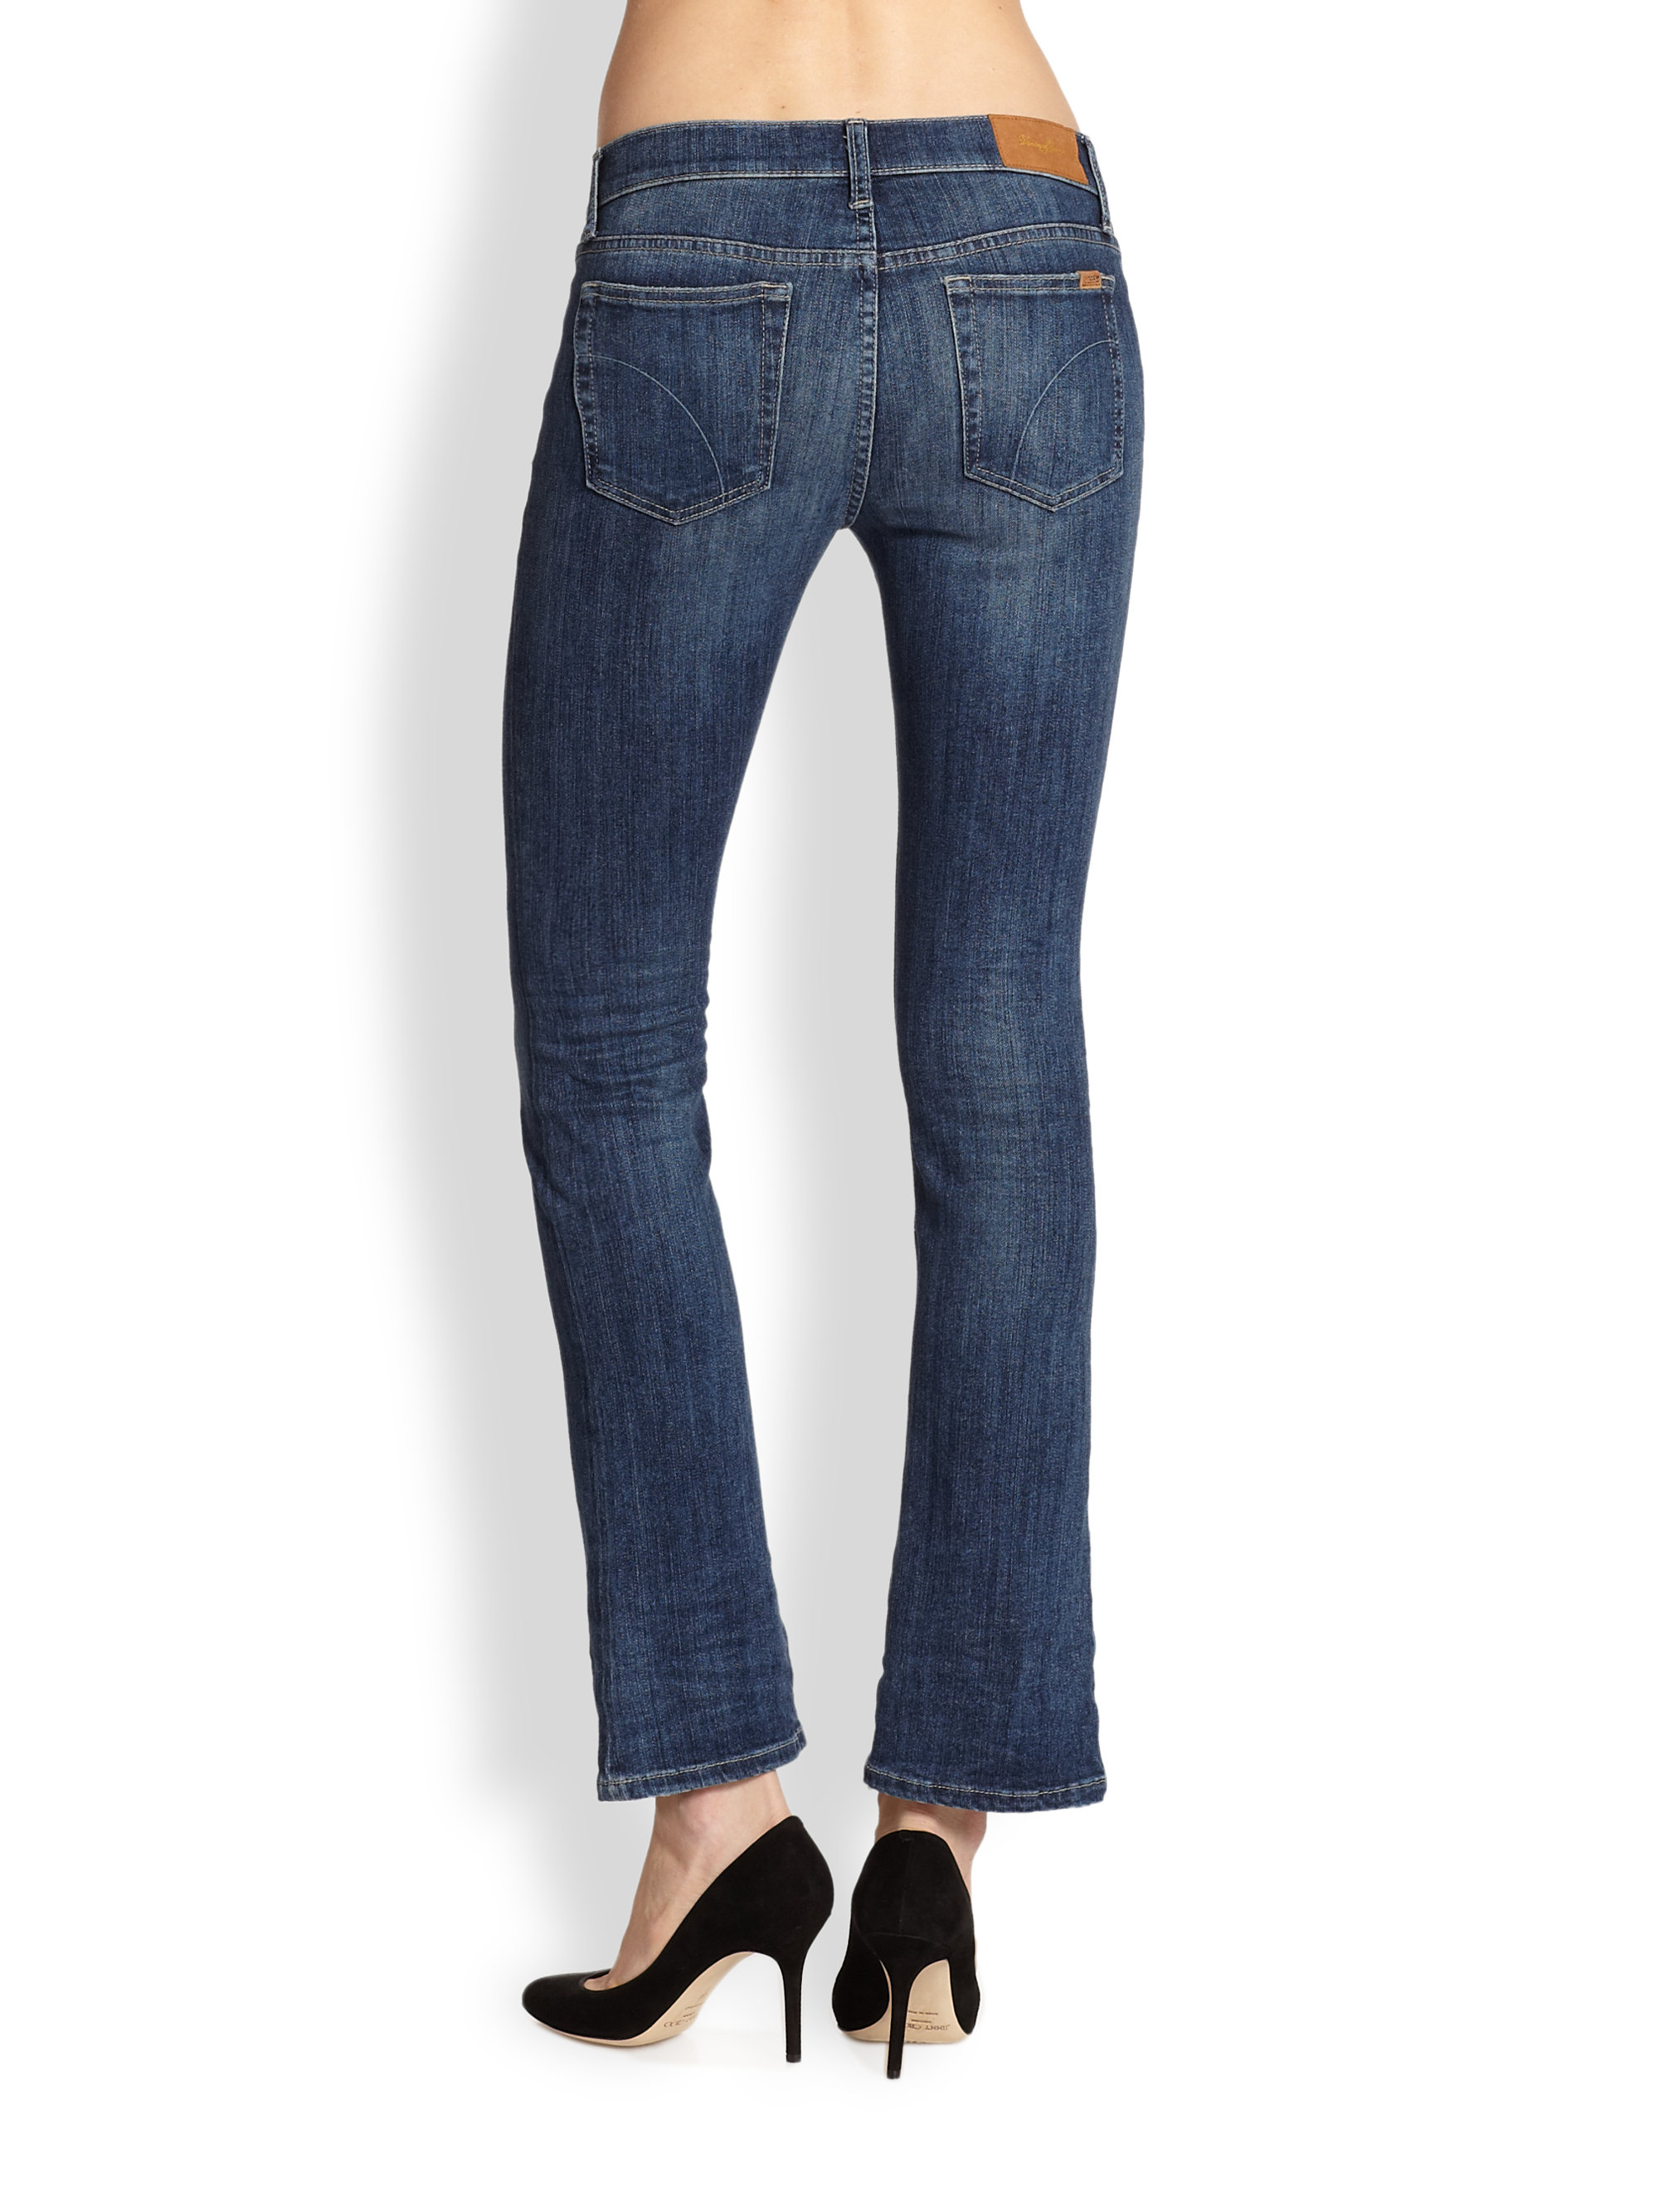 Joe&39s jeans Laurel Petite Bootcut Jeans in Blue | Lyst